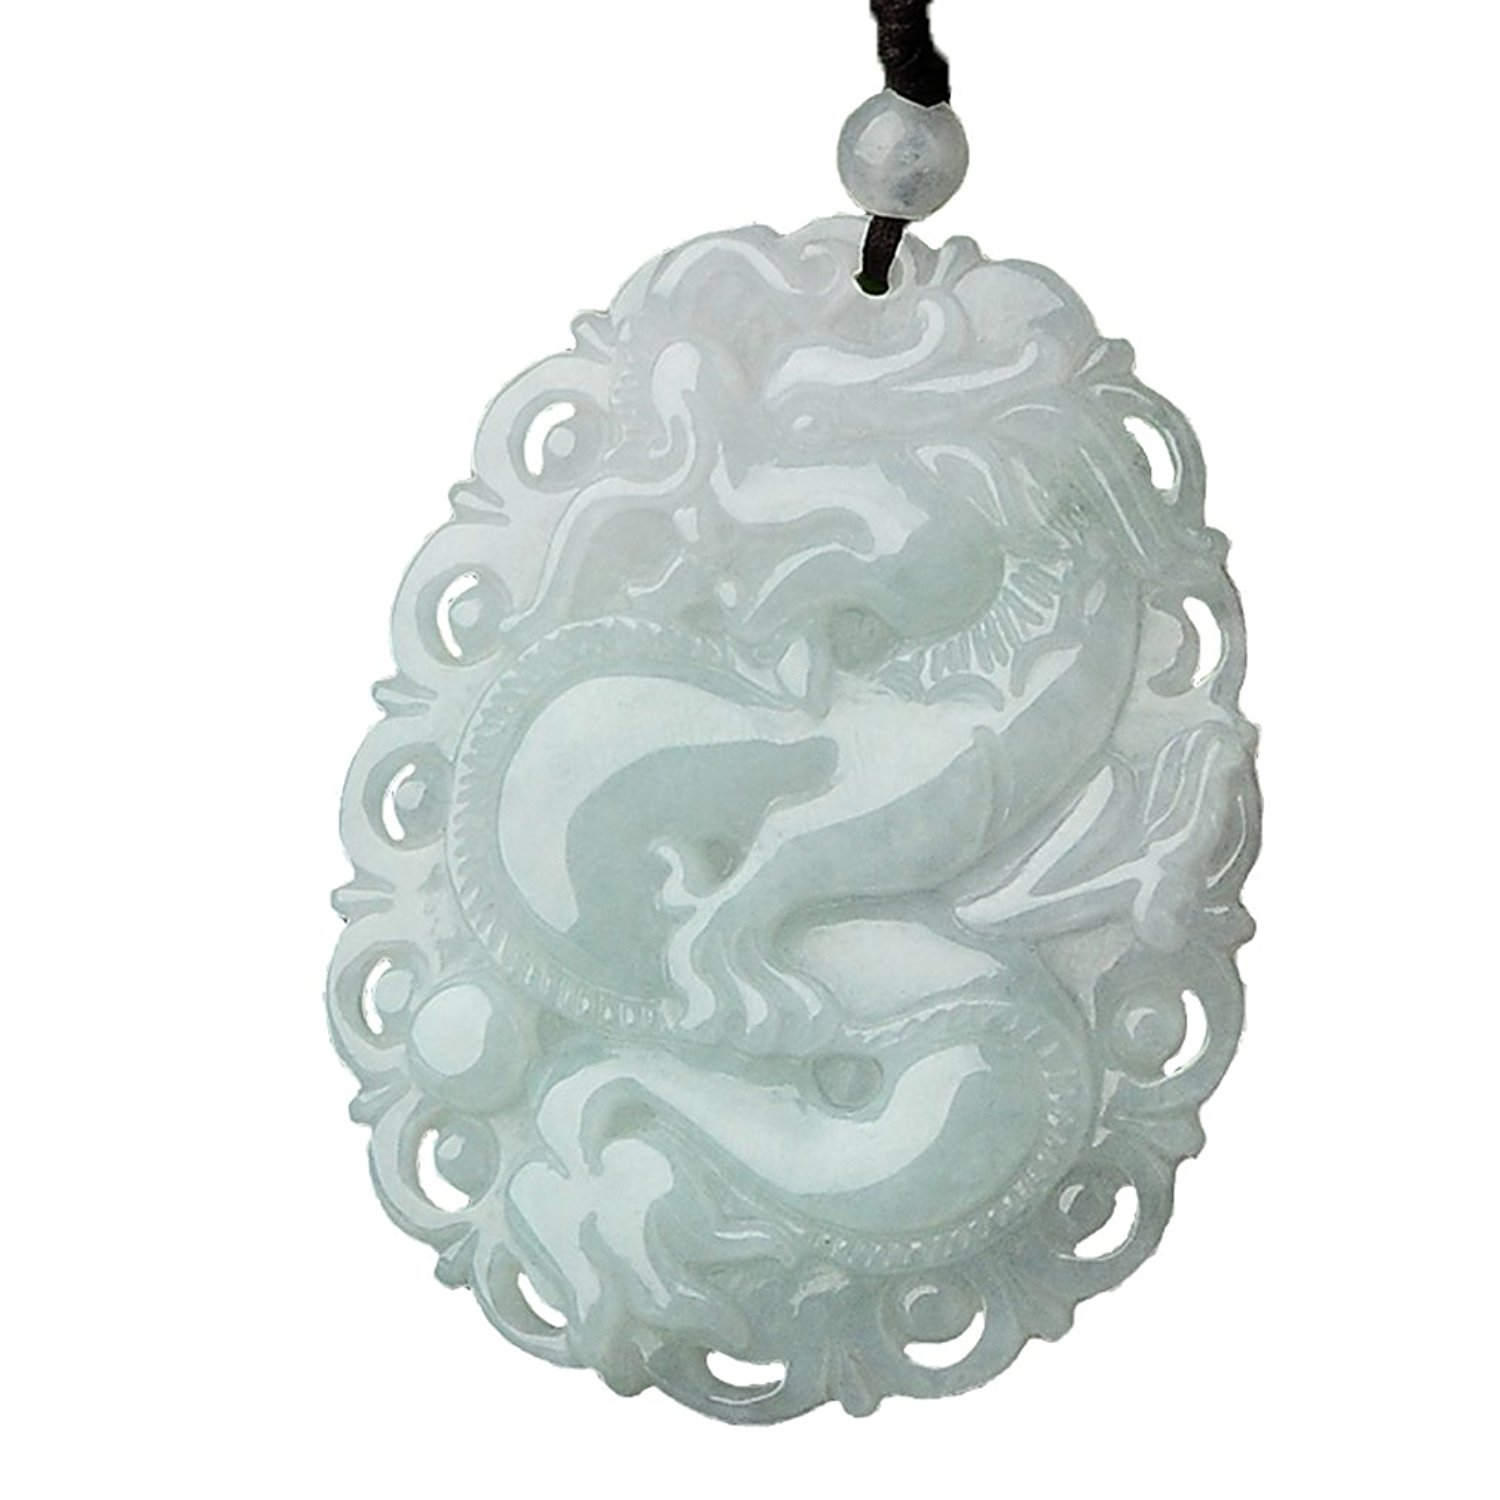 Koraba Fine Jewelry Pure Natural Hand Carved Jadeite Jade Dragon Amulet Pendant Necklace Free Shipping natural jadeite dragon brand lace jade pendant zodiac dragon transshipment yu pei jade pendant necklace for women and men